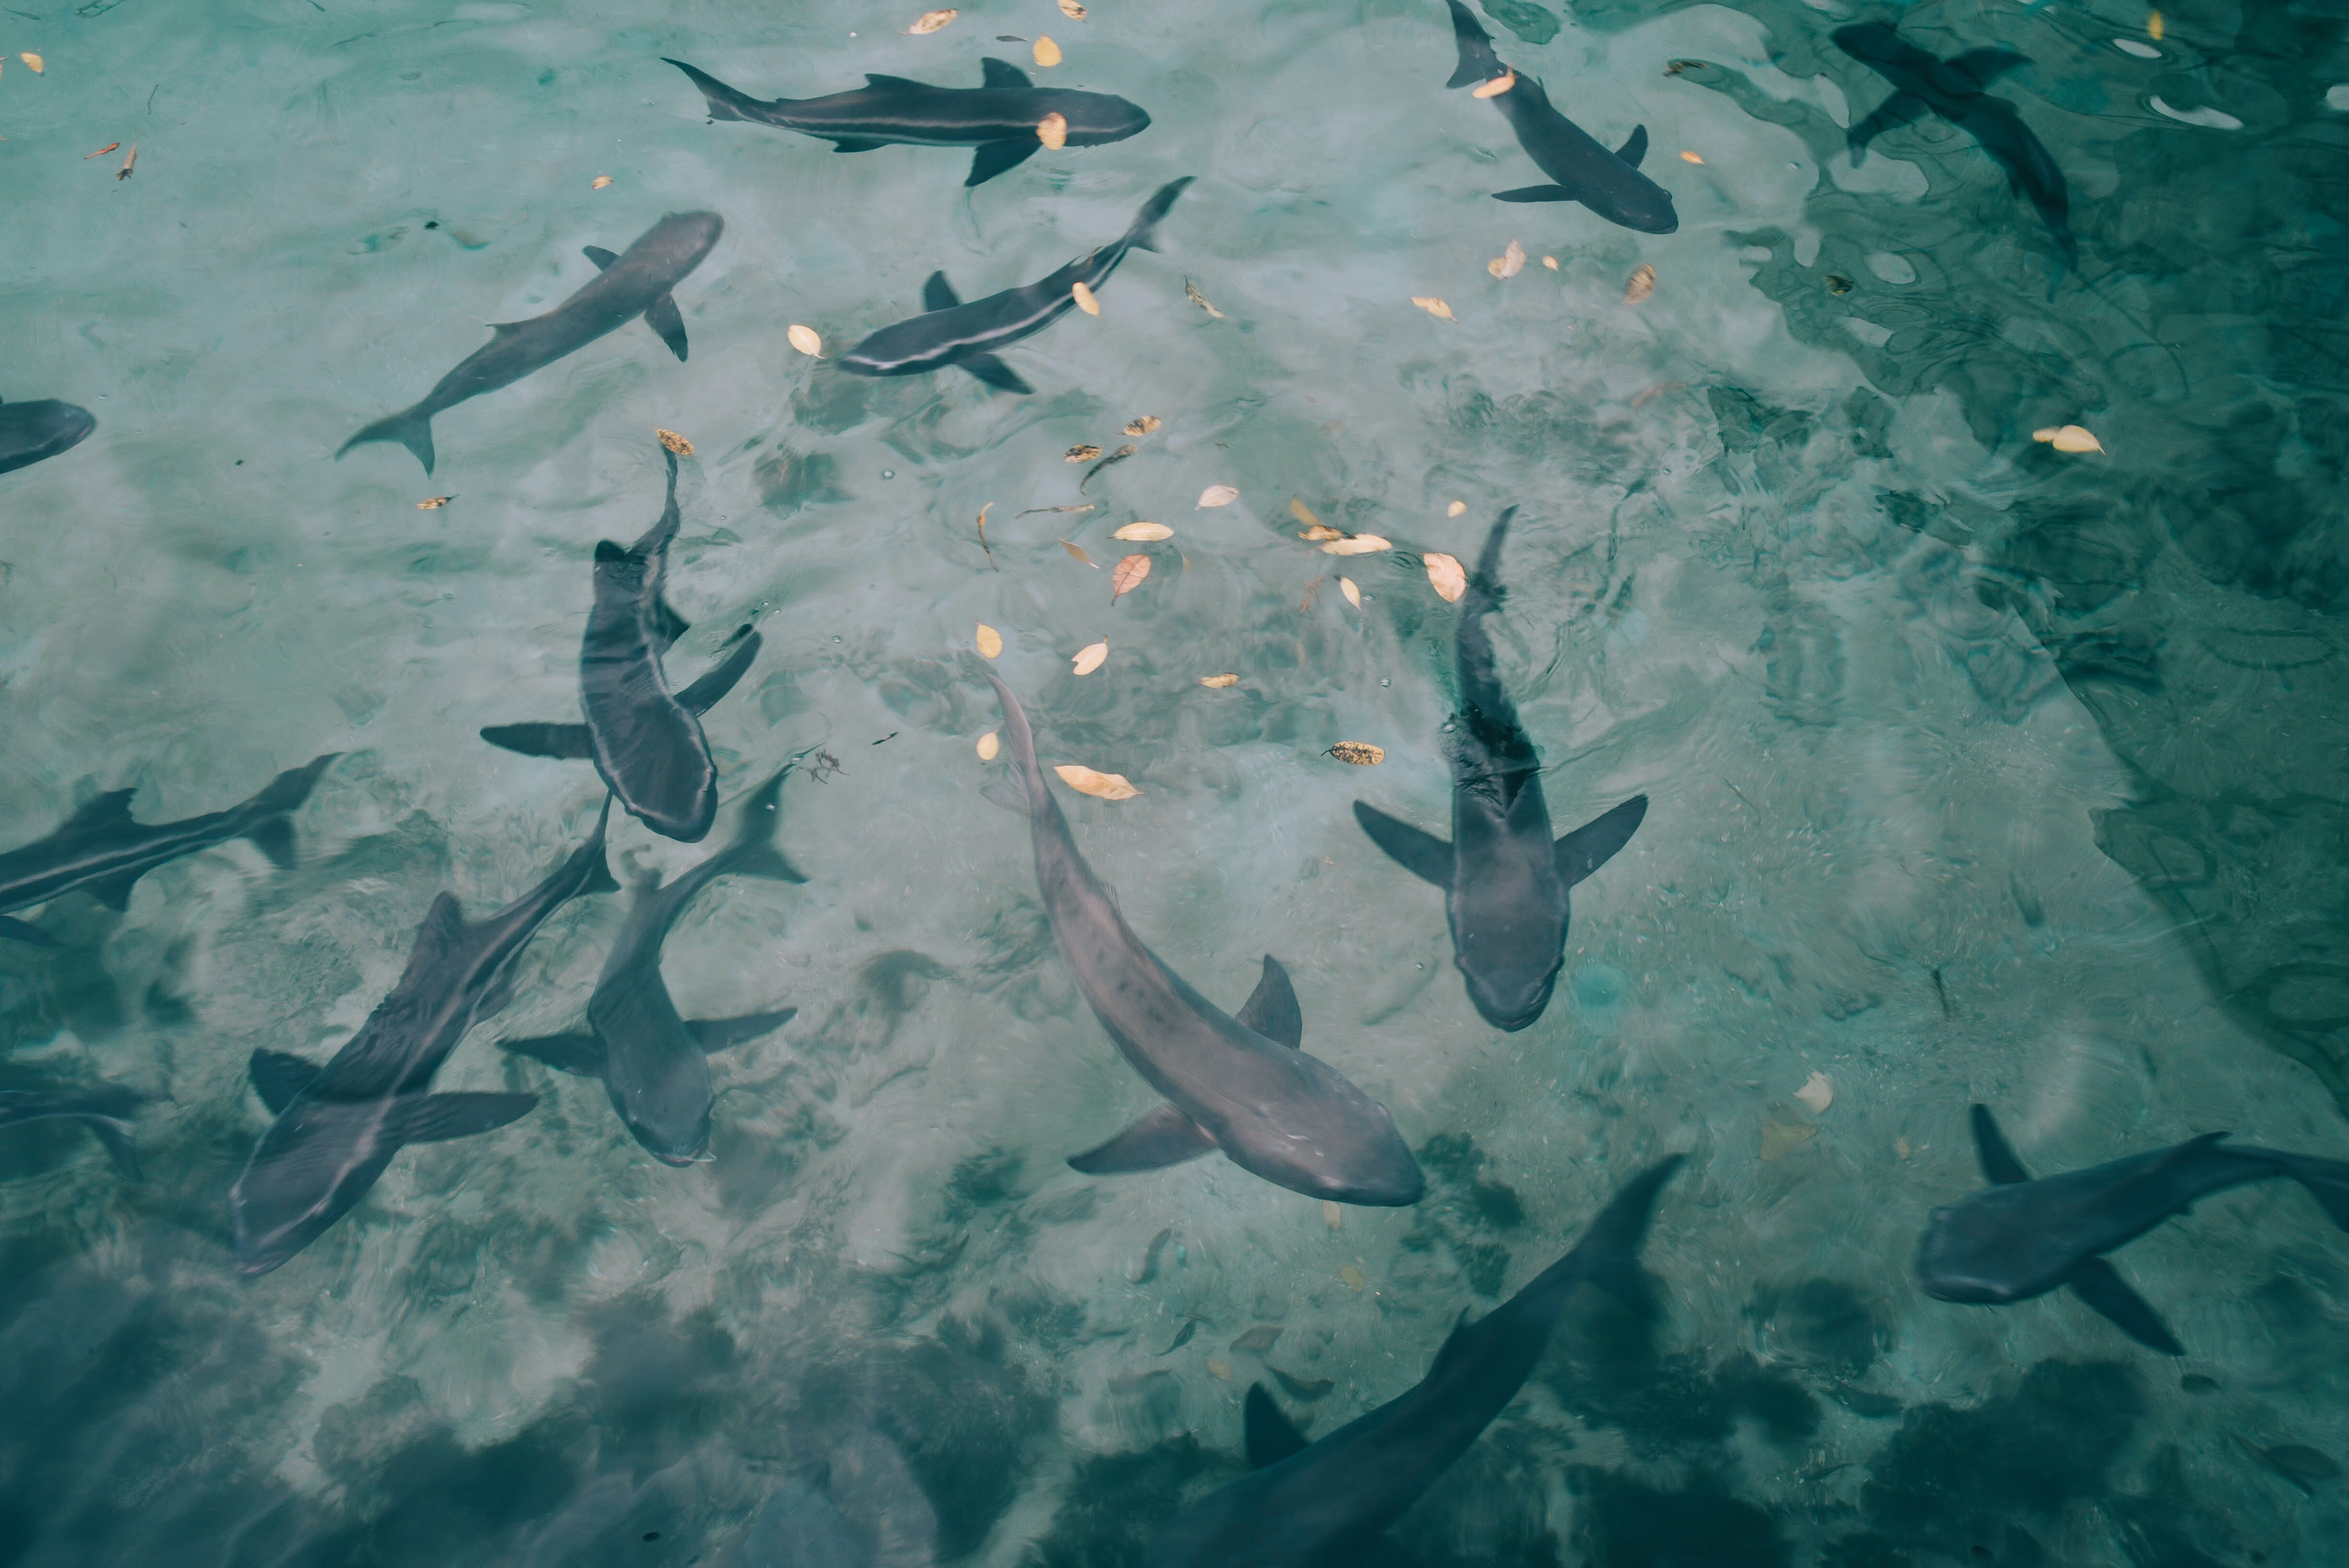 high-angle photo of shoal of sharks underwater